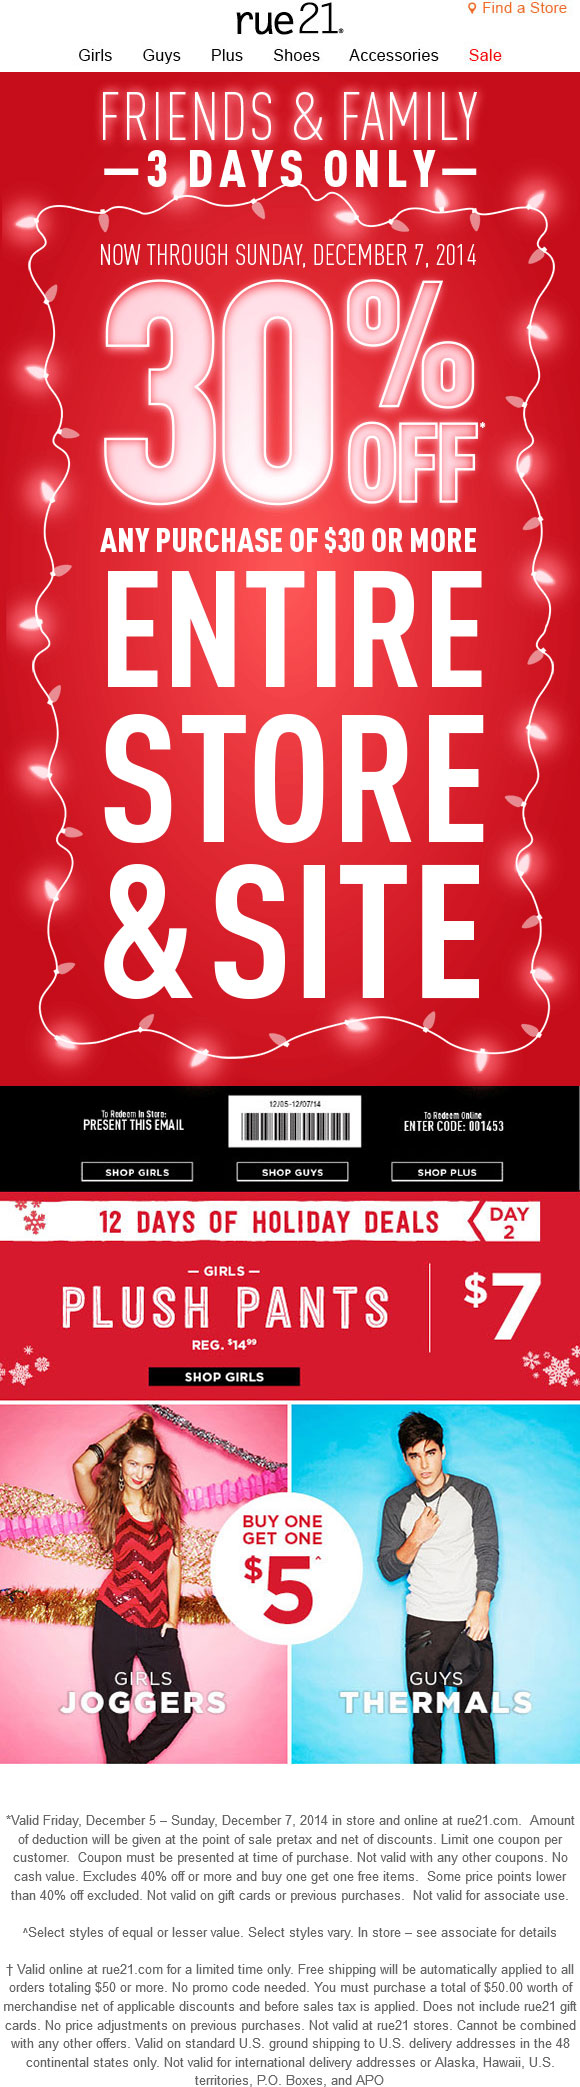 Rue21 Coupon December 2016 30% off $30+ at rue21, or online via promo code 001453